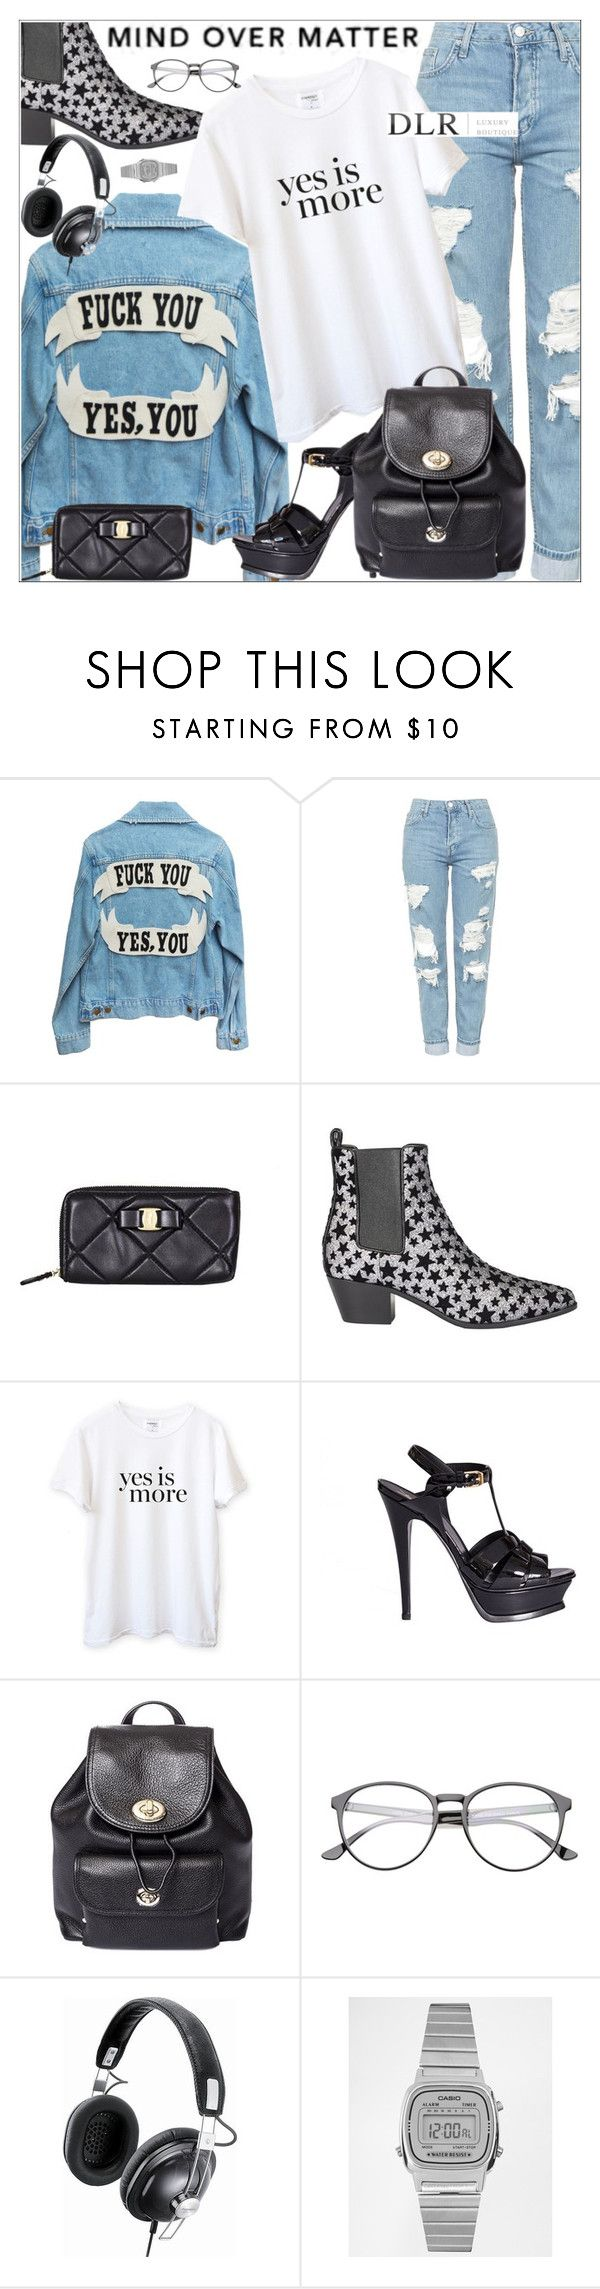 """""""DLRBOUTIQUE.COM"""" by mirachu-1 on Polyvore featuring Topshop, Salvatore Ferragamo, Yves Saint Laurent, Sincerely, Jules, Coach, Panasonic and Casio"""